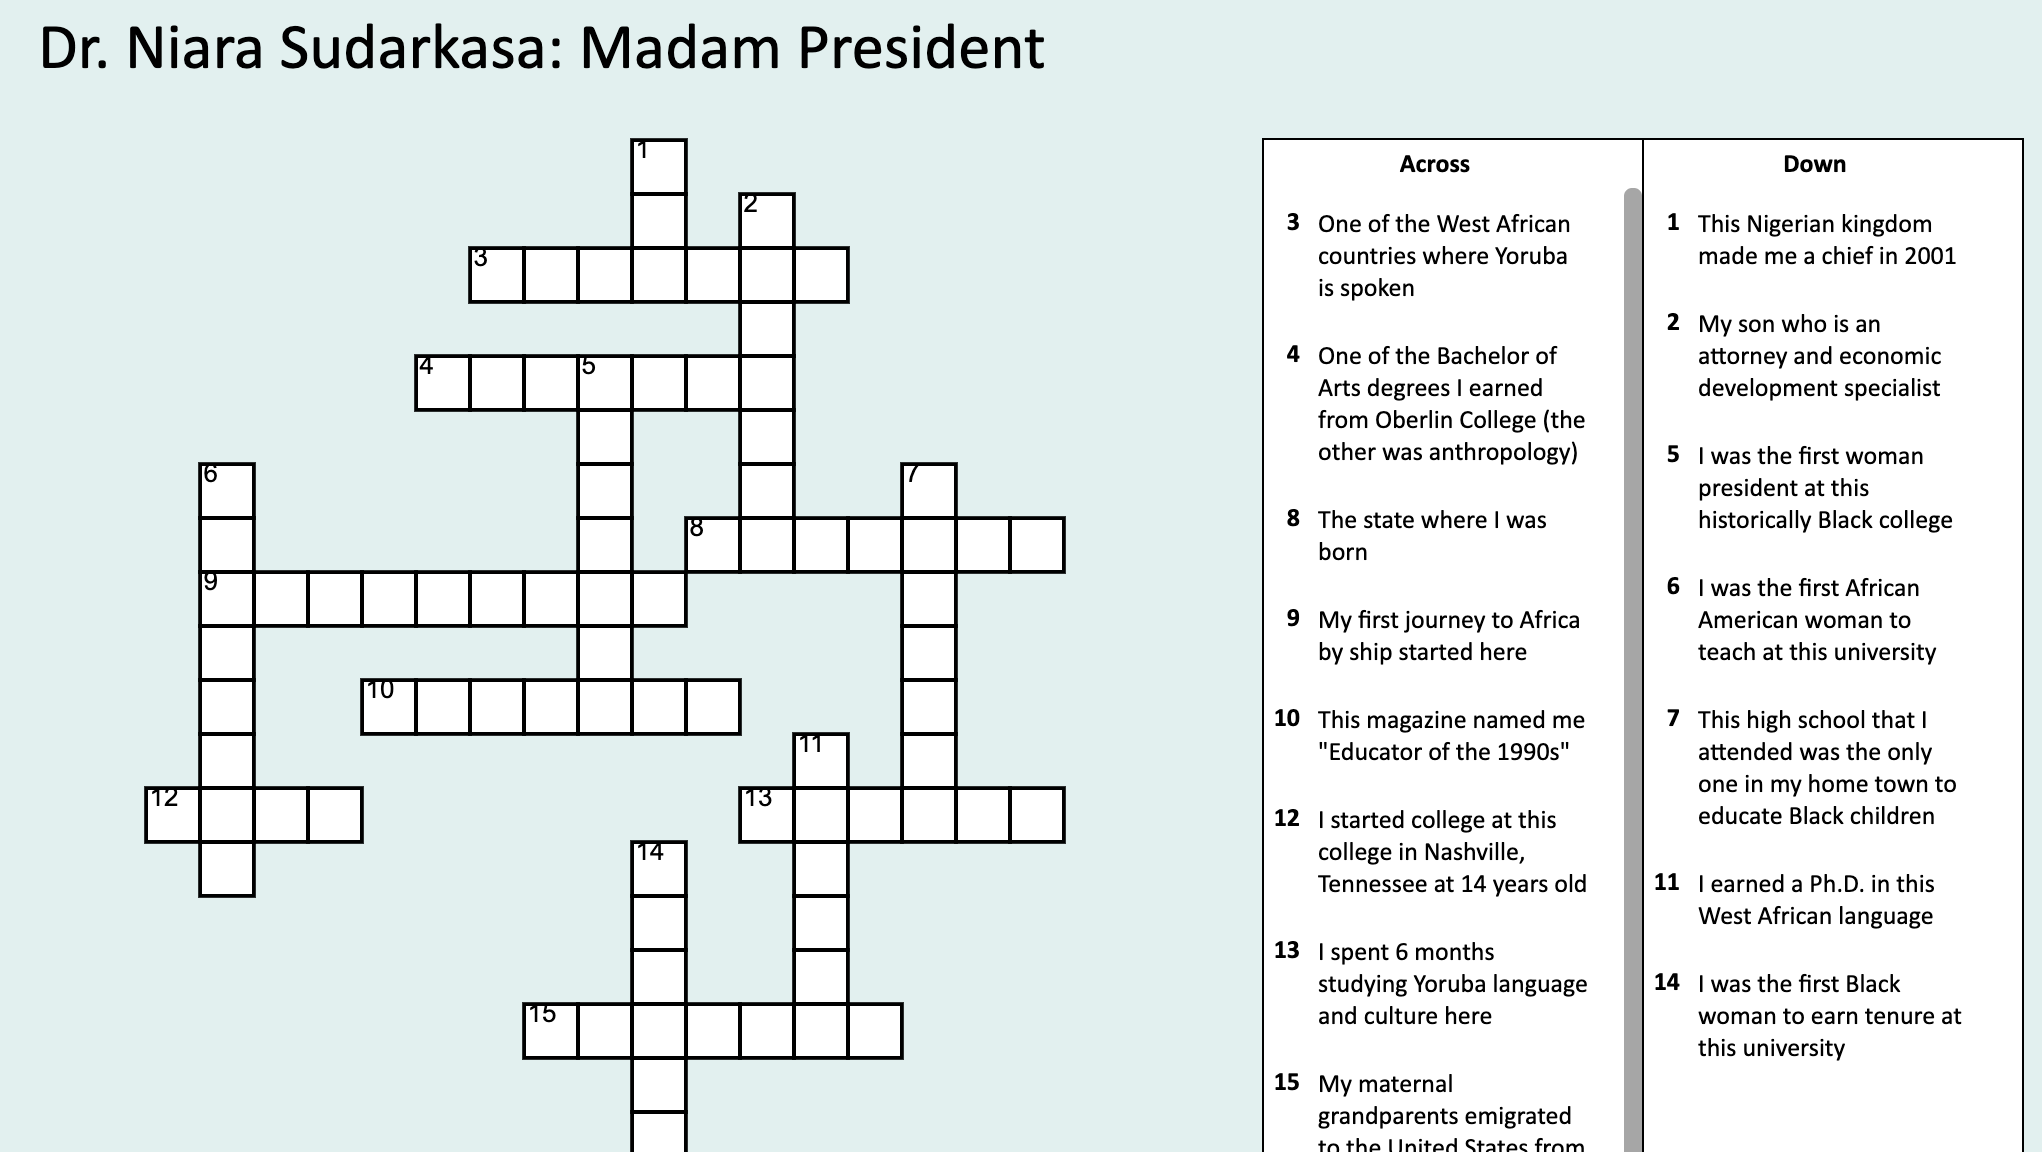 Image and link to a crossword puzzle about Dr. Niara Sudarkasa